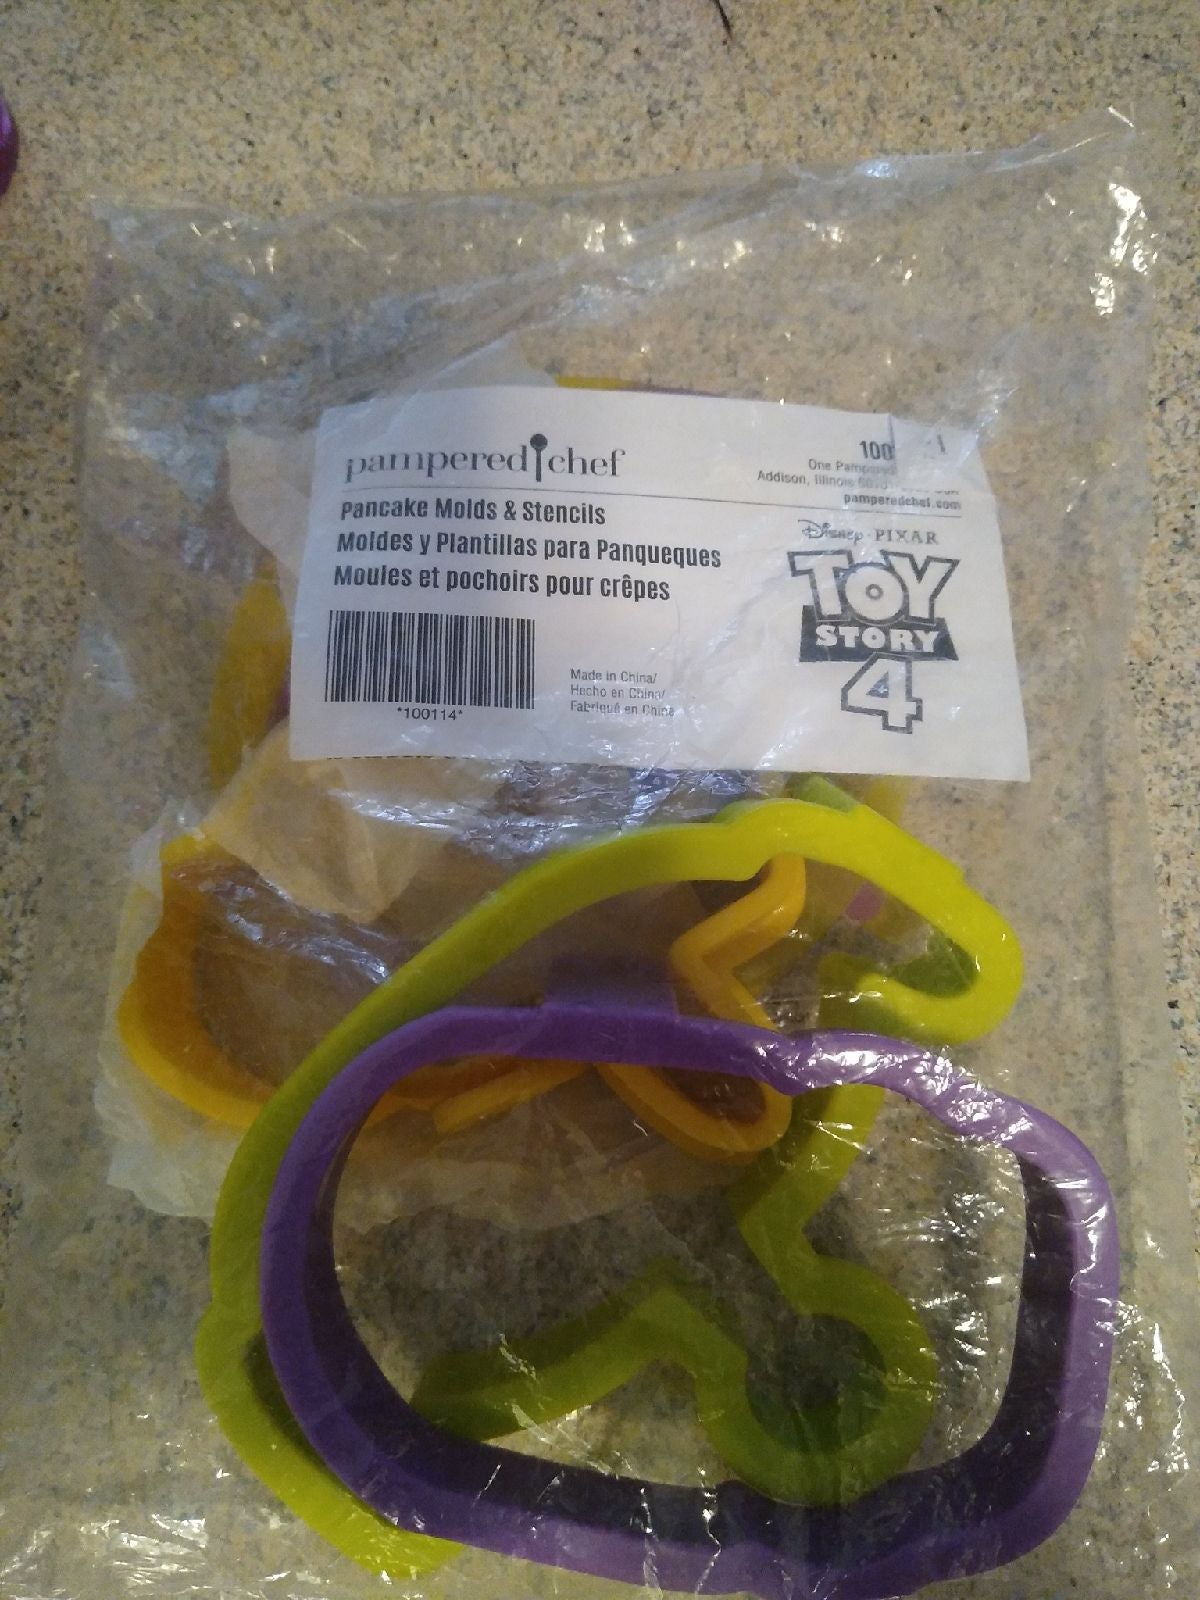 Pampered chef toy story 4 pancake molds